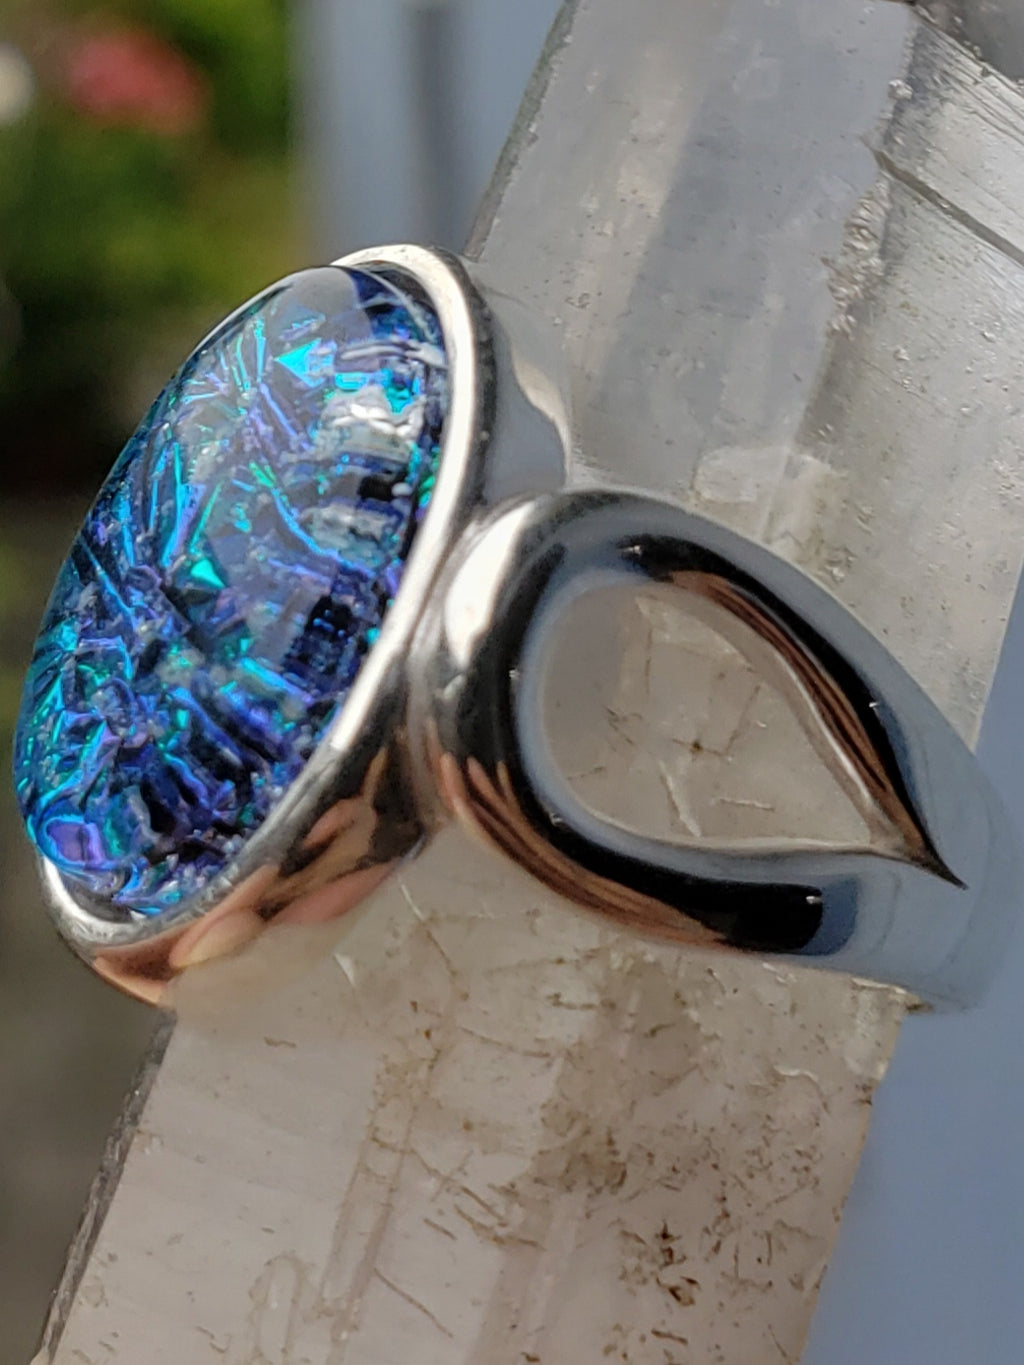 side view loop ring sterling silver, cremation jewelry, memorial jewelry, pet memorial jewelry, cremation ring, memorial ring, handmade, urn ring, ashes in glass, ashes InFused Glass, ring for Ashes, sympathy gift USA Handmade by Infusion Glass Artist Joele Williams Human and Pet Cremation Ash Remembrance Urns AshesInfusedGlass.com